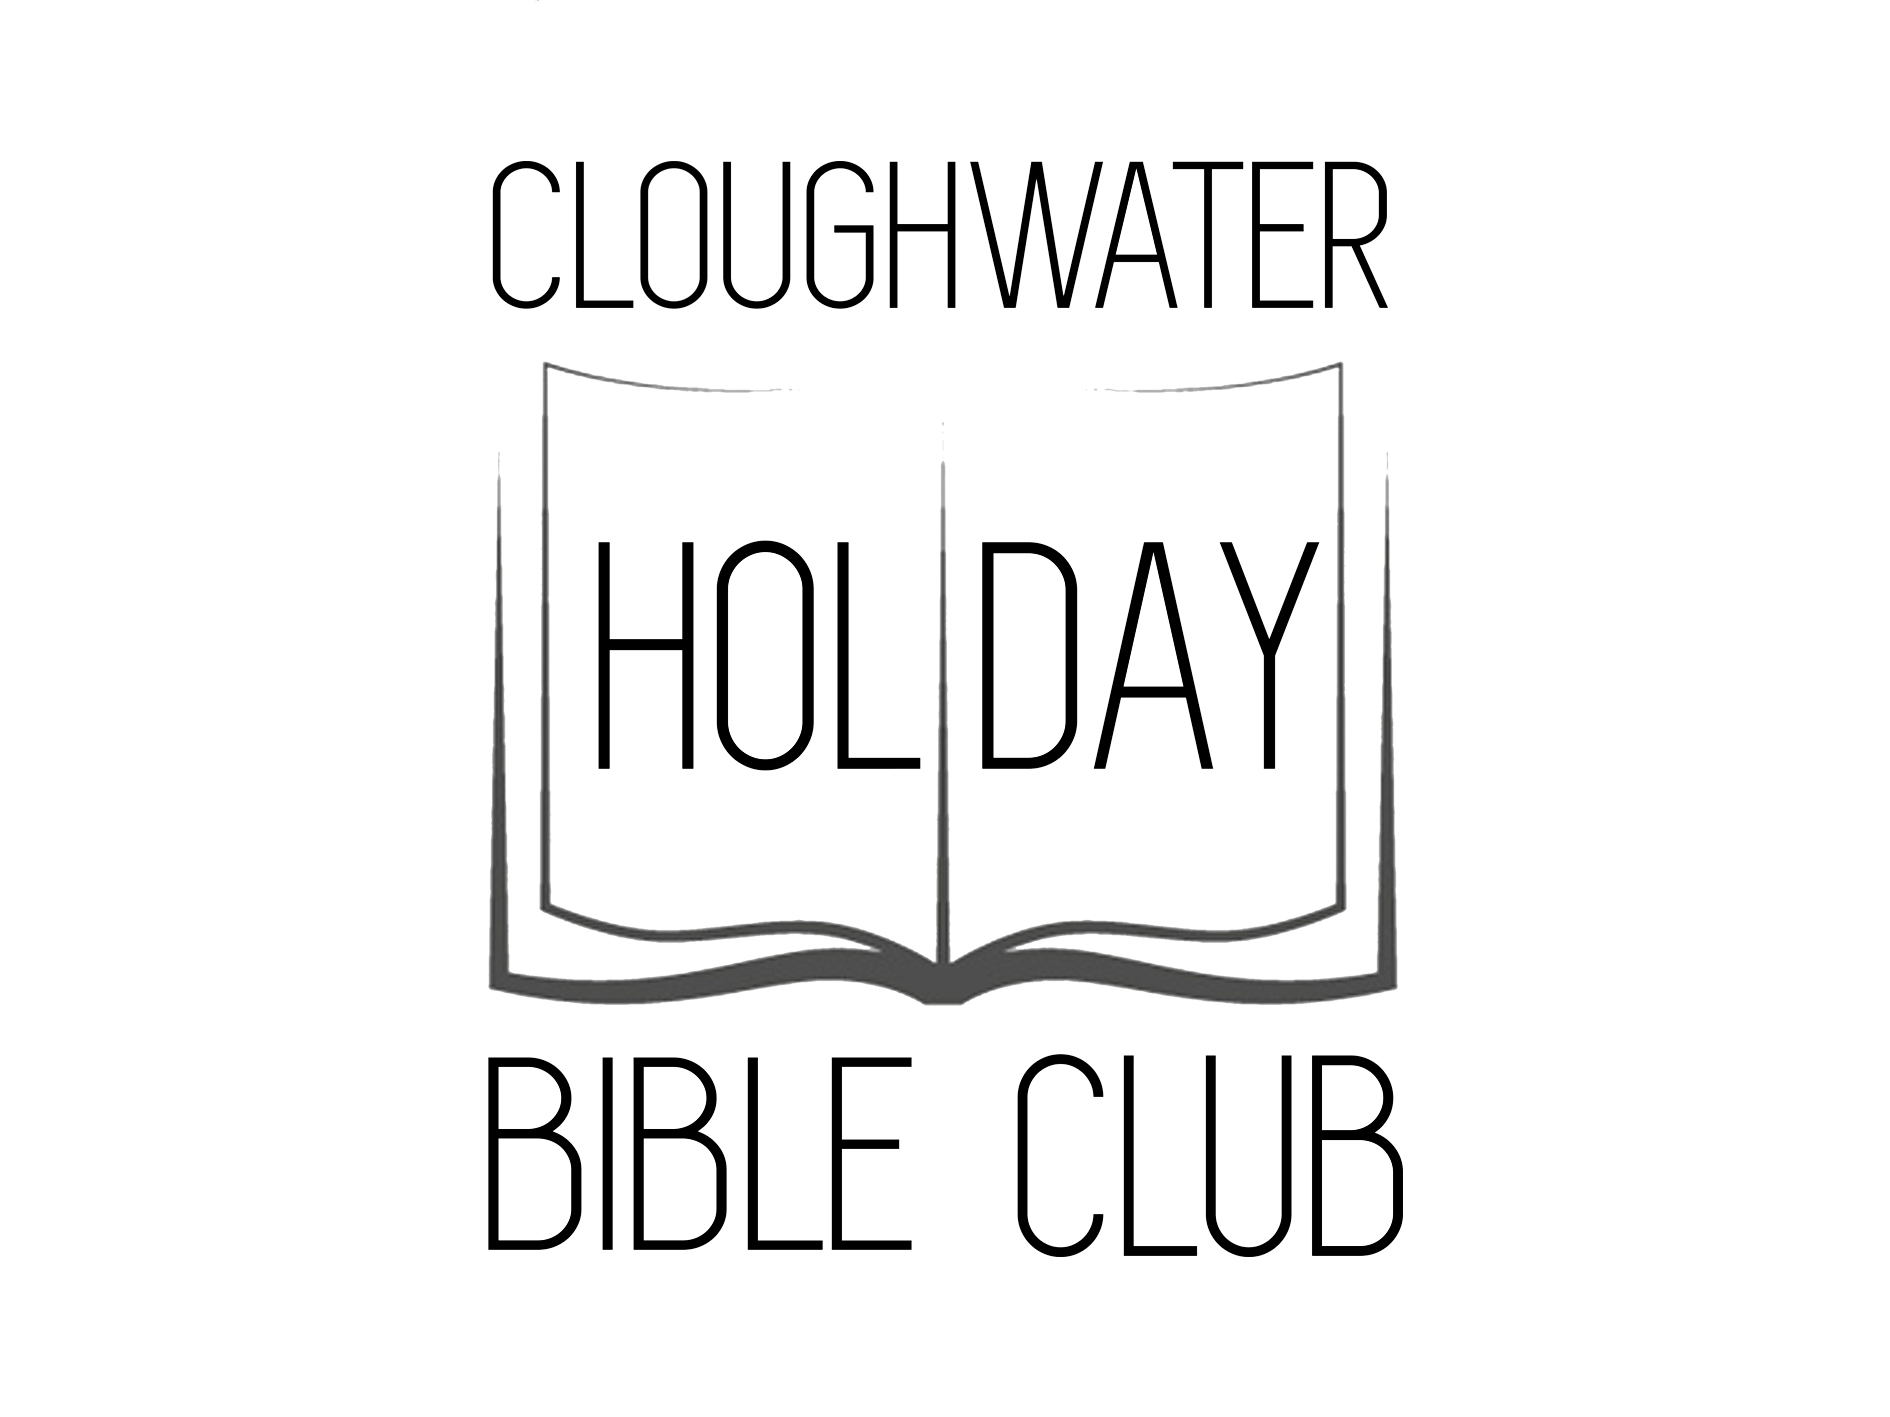 Cloughwater Holiday Bible Club